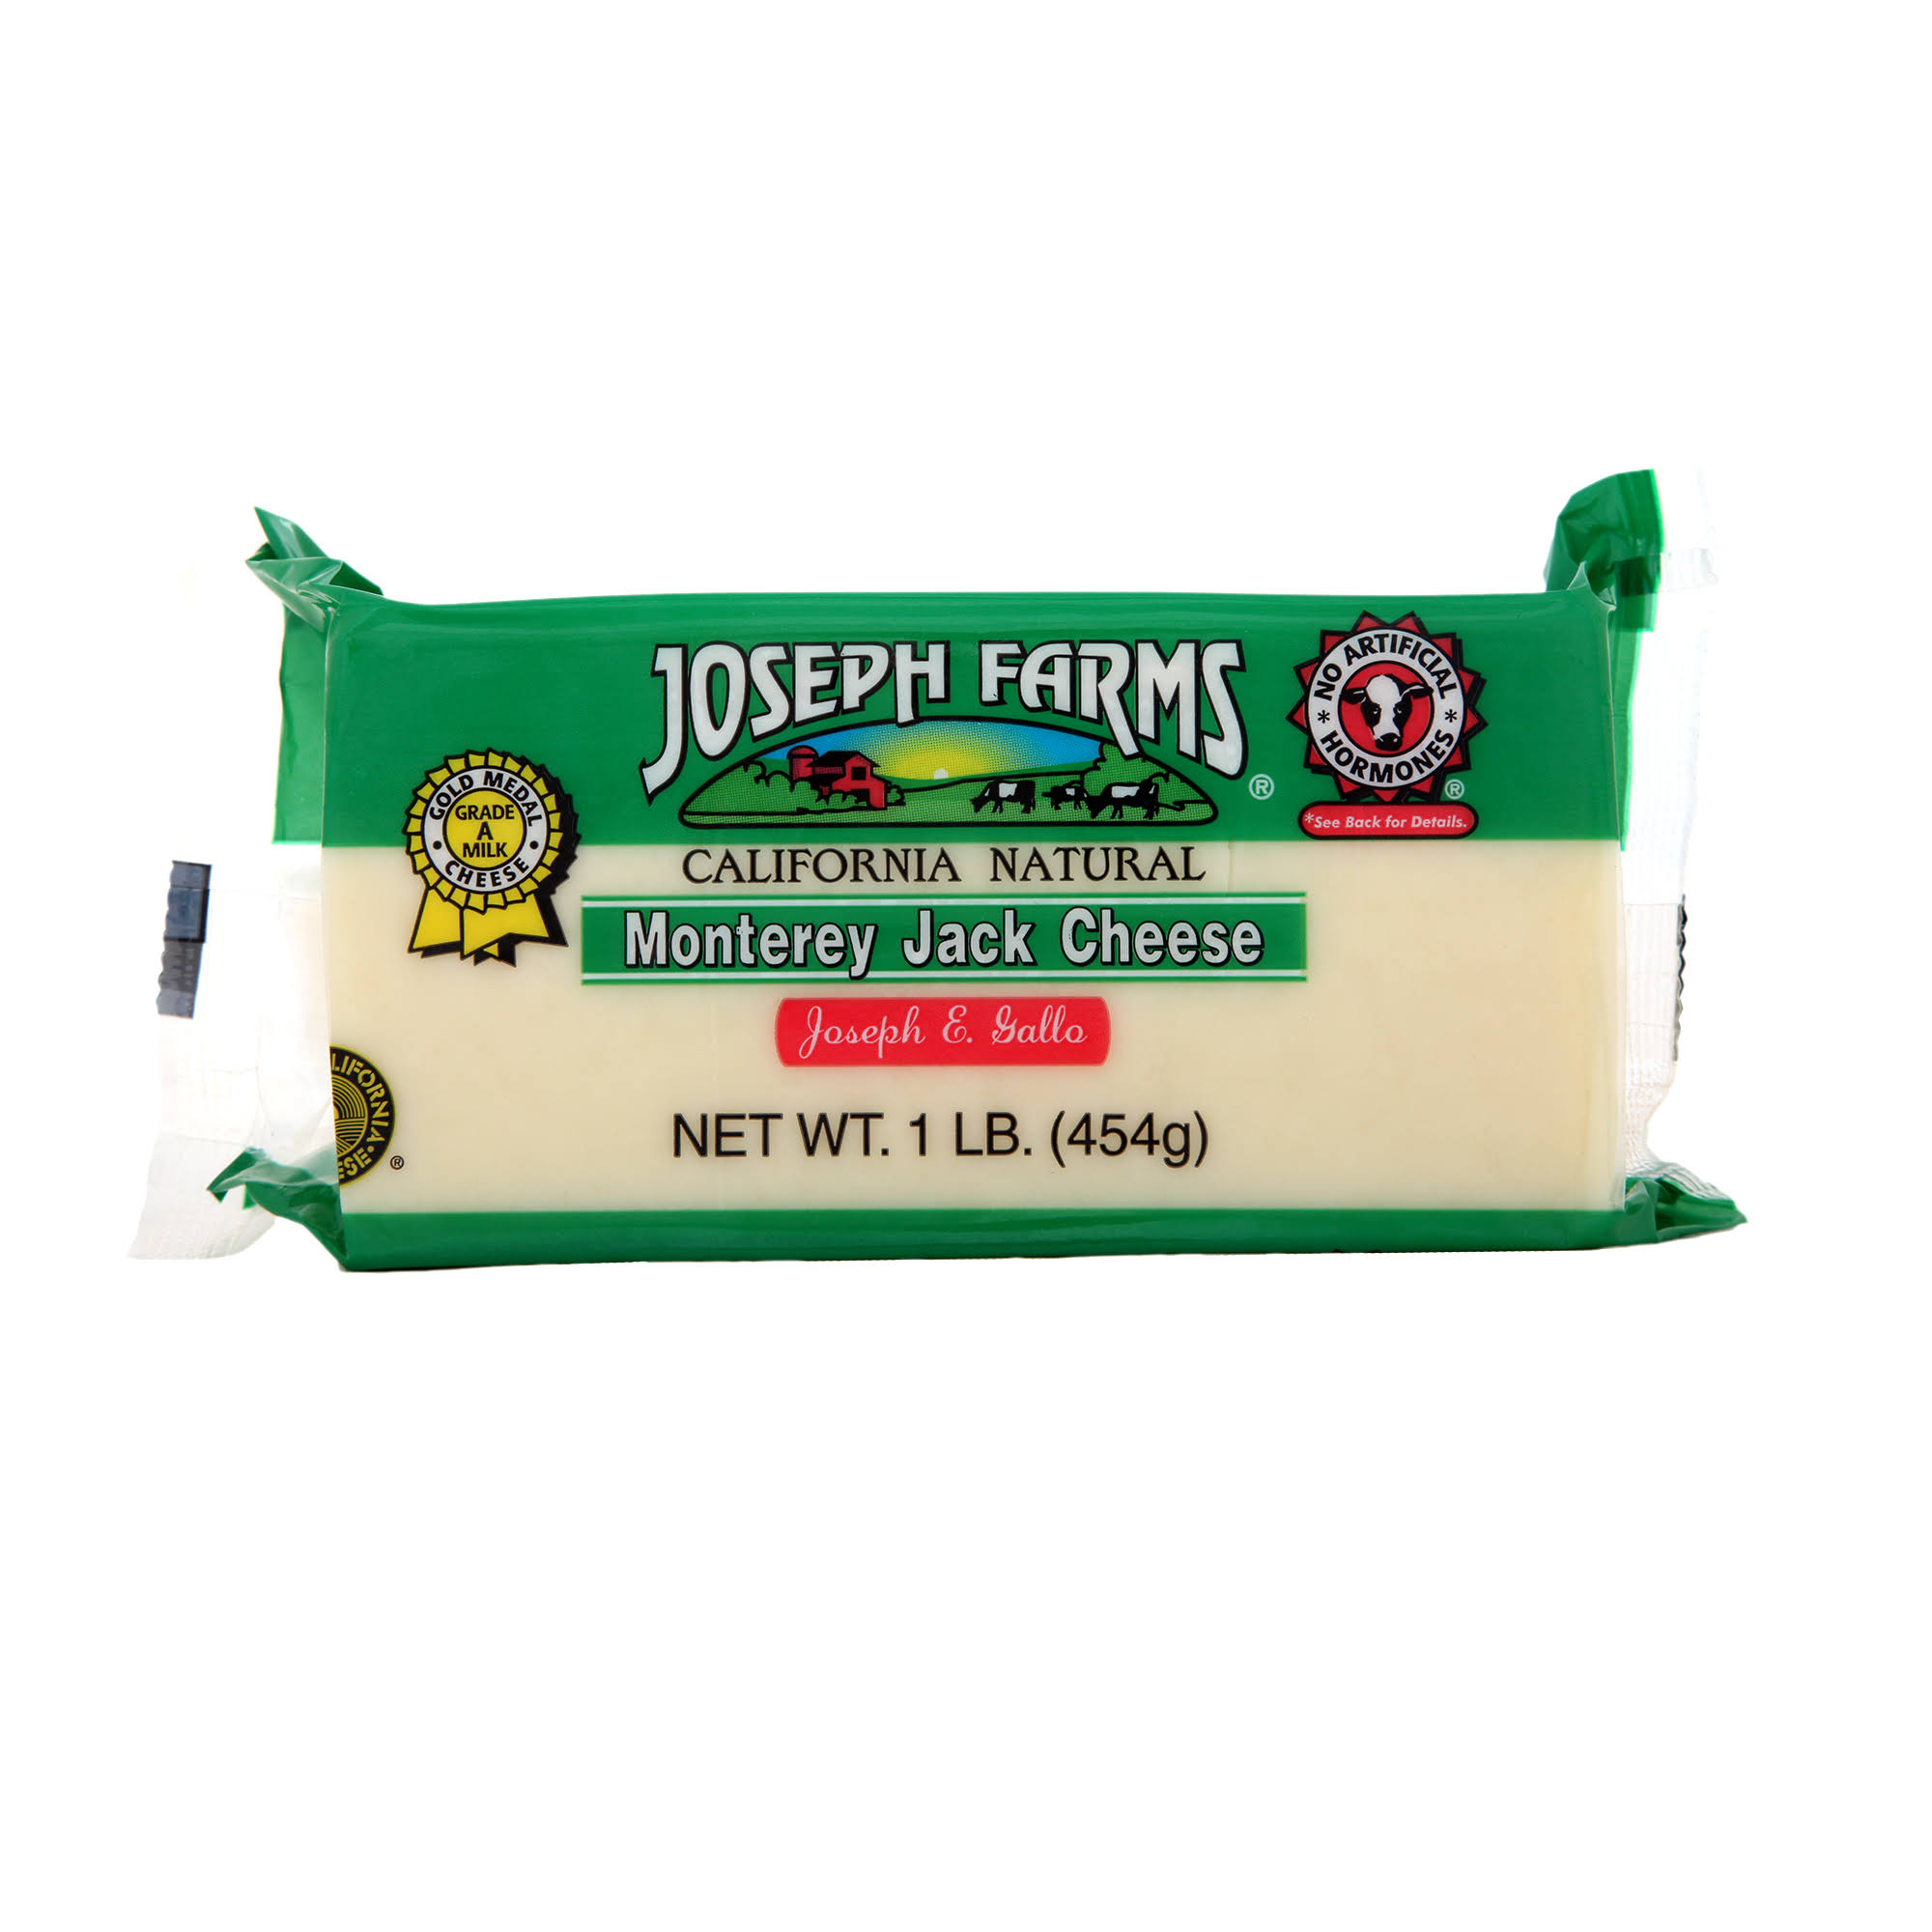 Joseph Farms Monterey Jack Cheese - 16oz